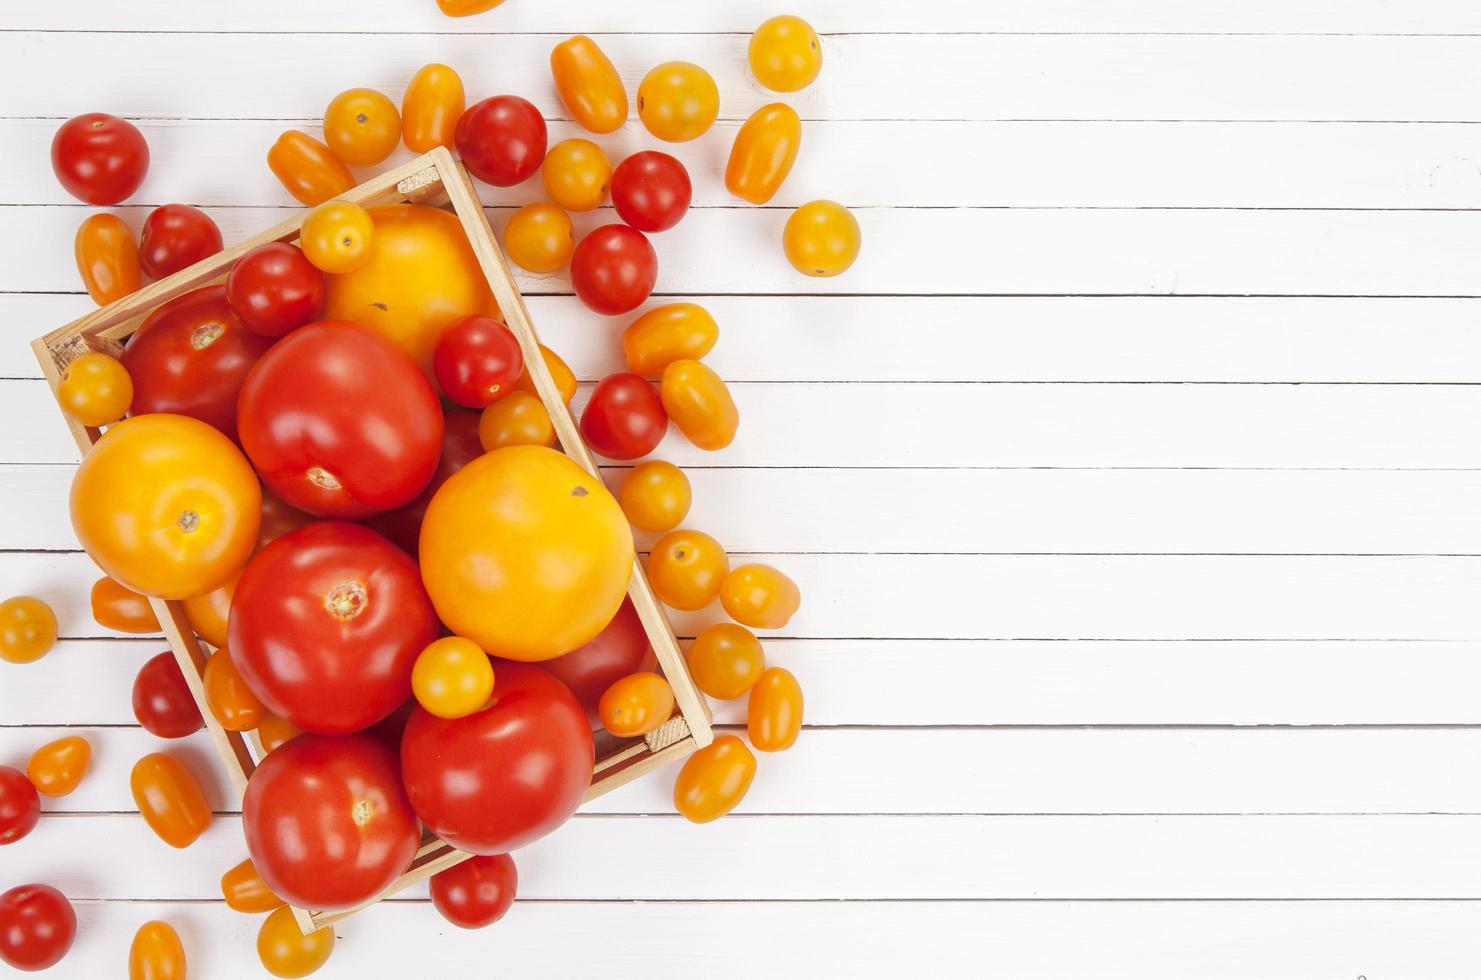 Colorful tomatoes on white background photo